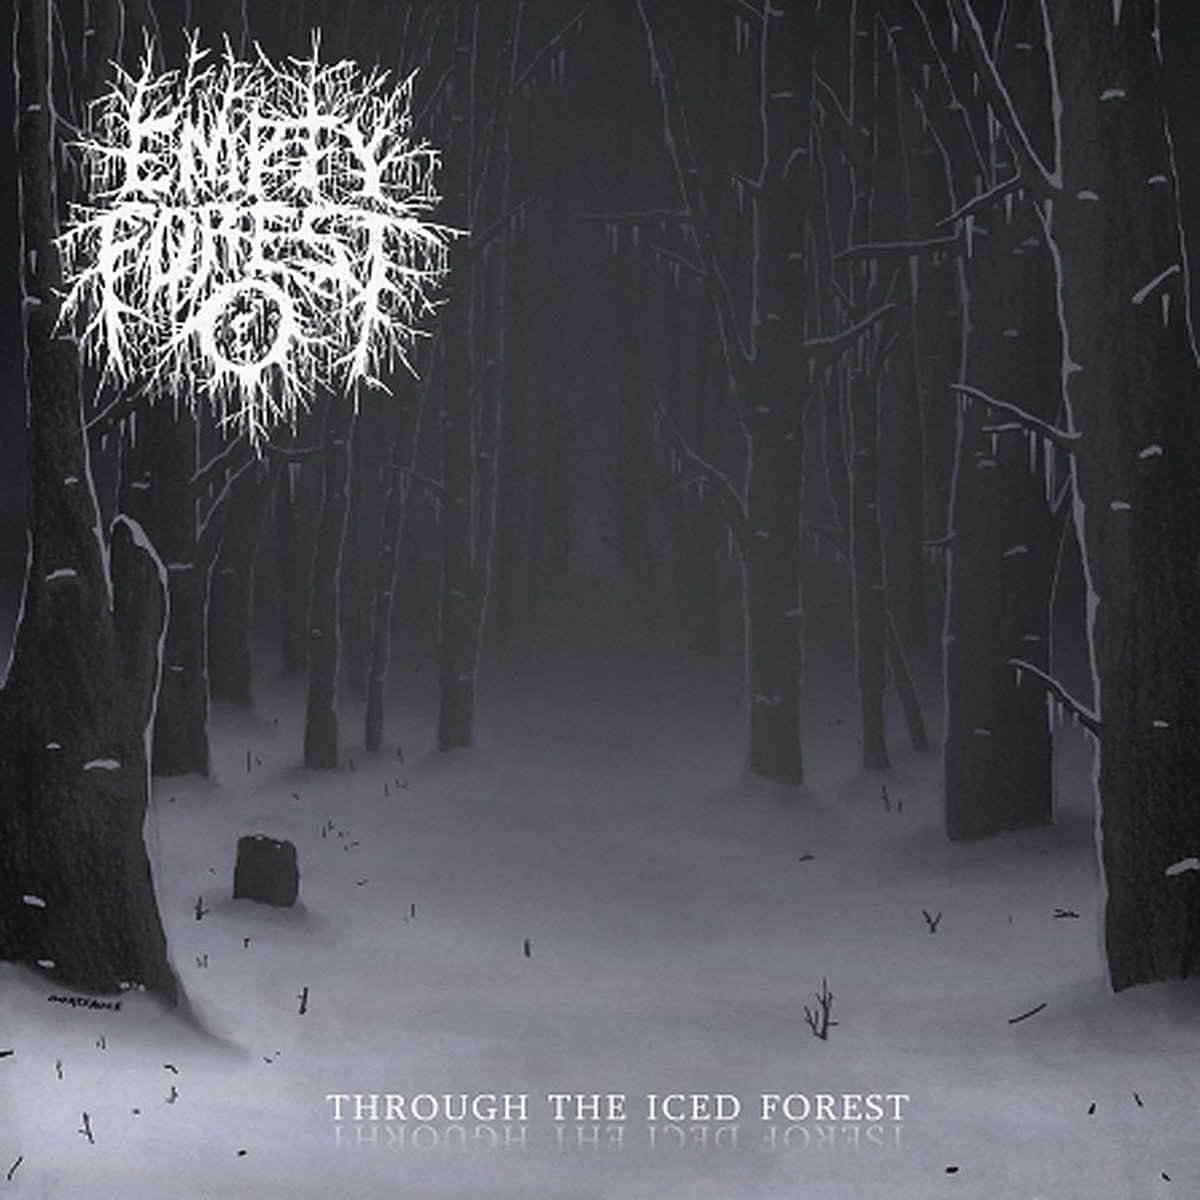 Empty Forest - Through the Iced Forest